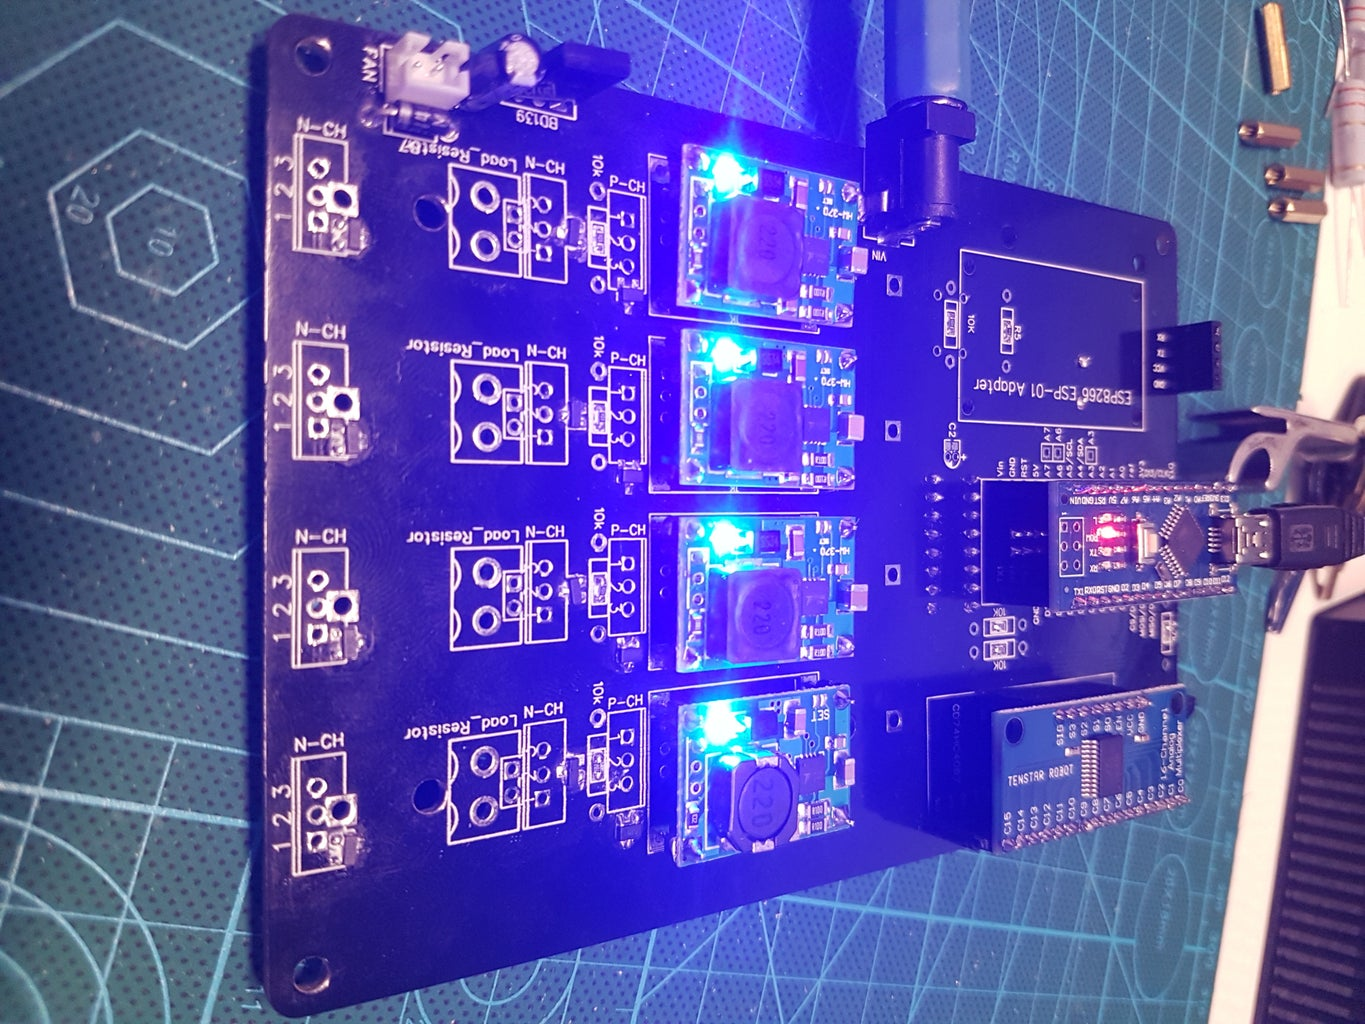 Install and Test the TP5100 Charging Modules